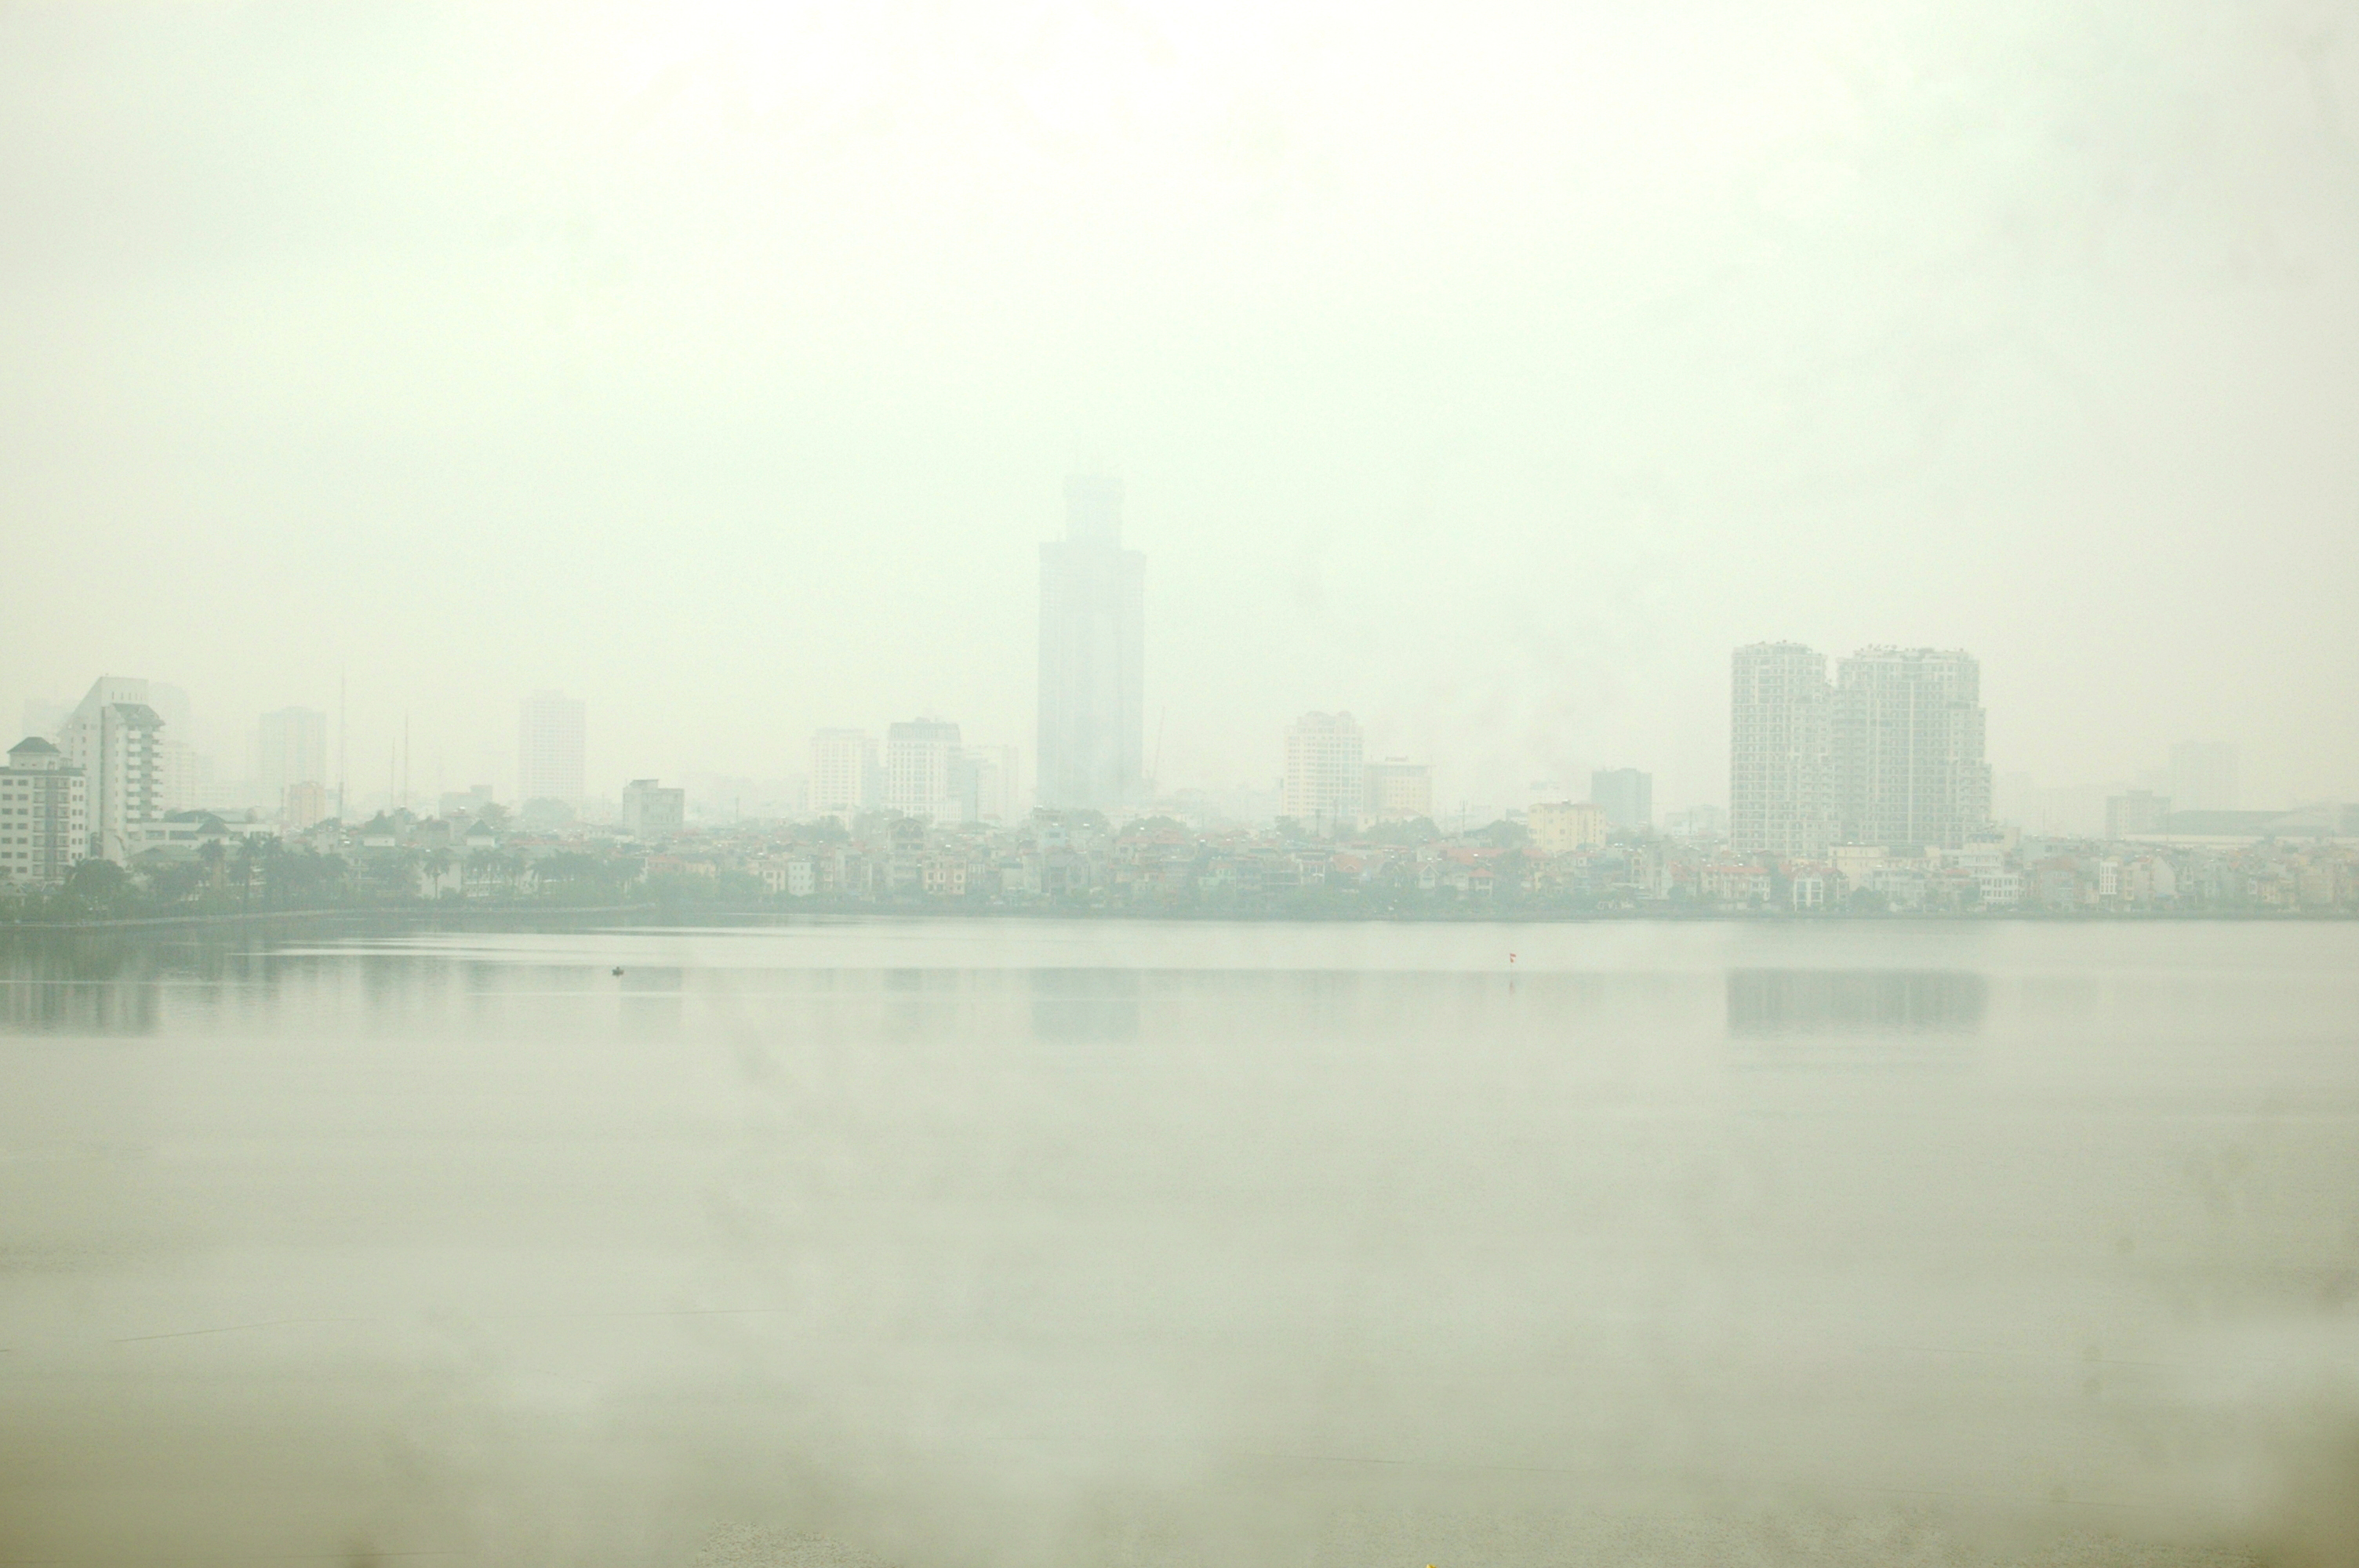 Hanoi weather in march